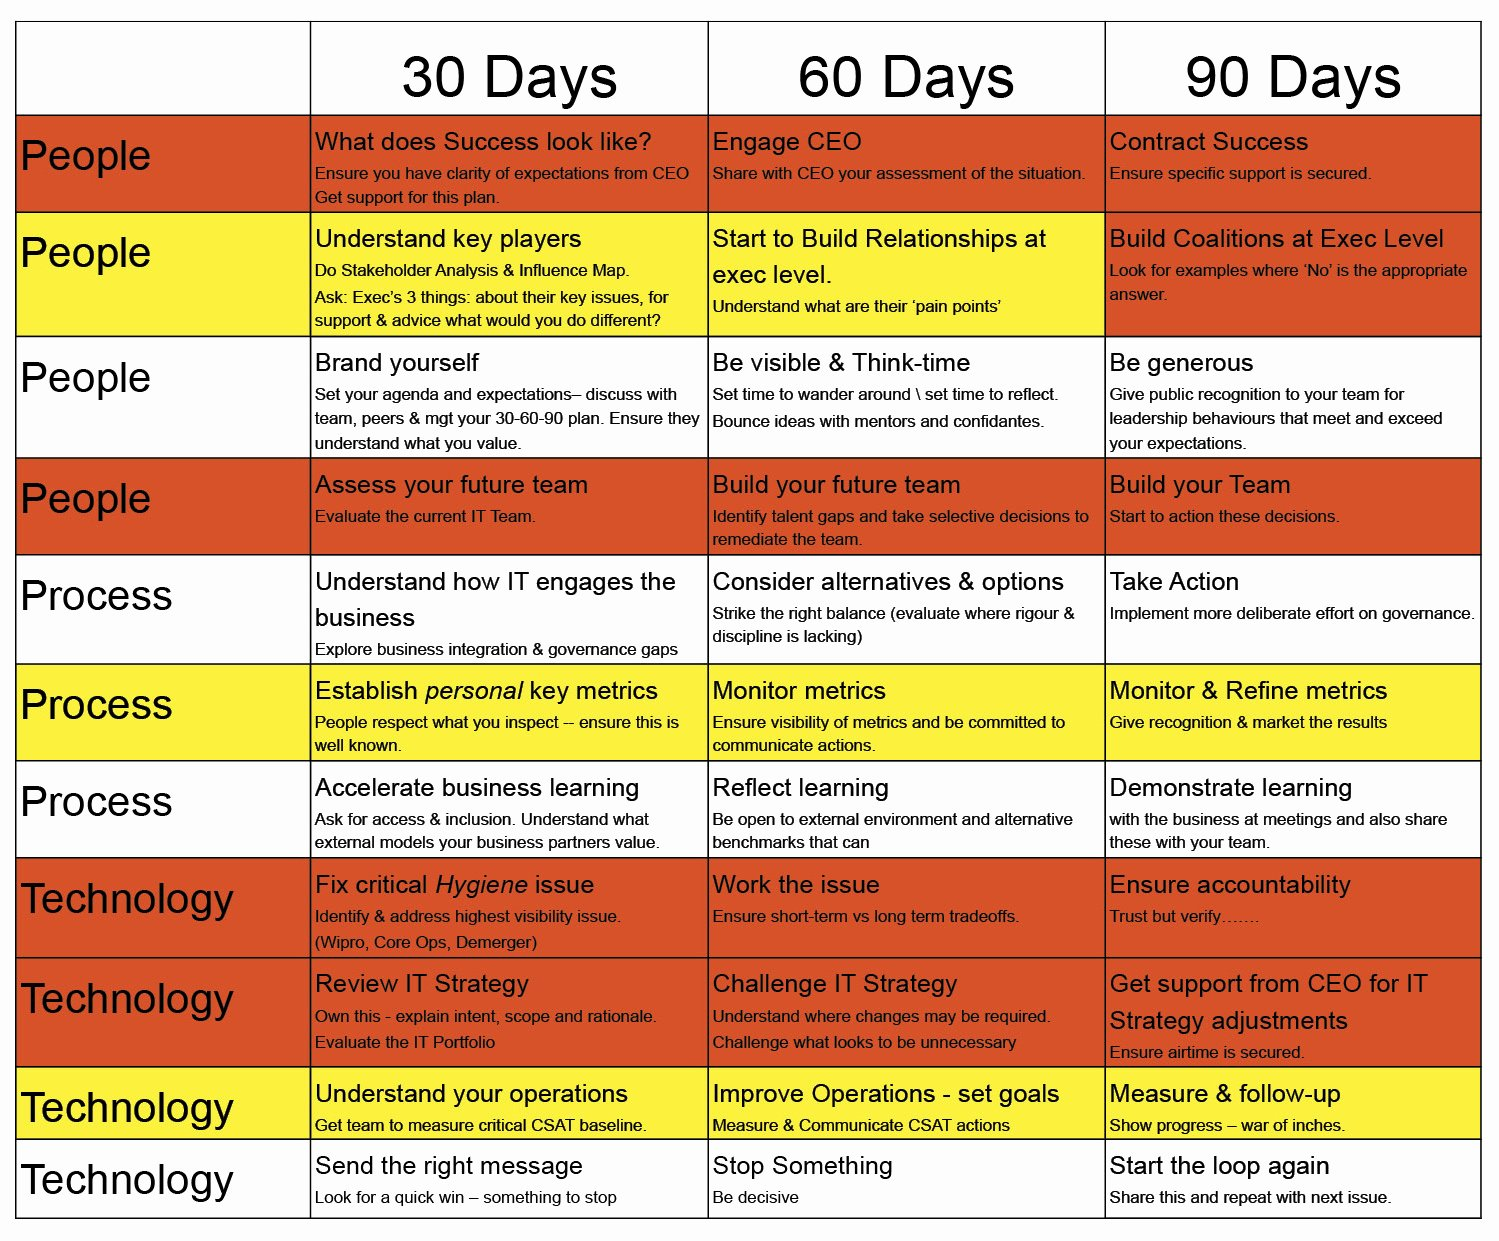 90 Day Onboarding Plan Template Inspirational My First 90 Days as A Cio Cio